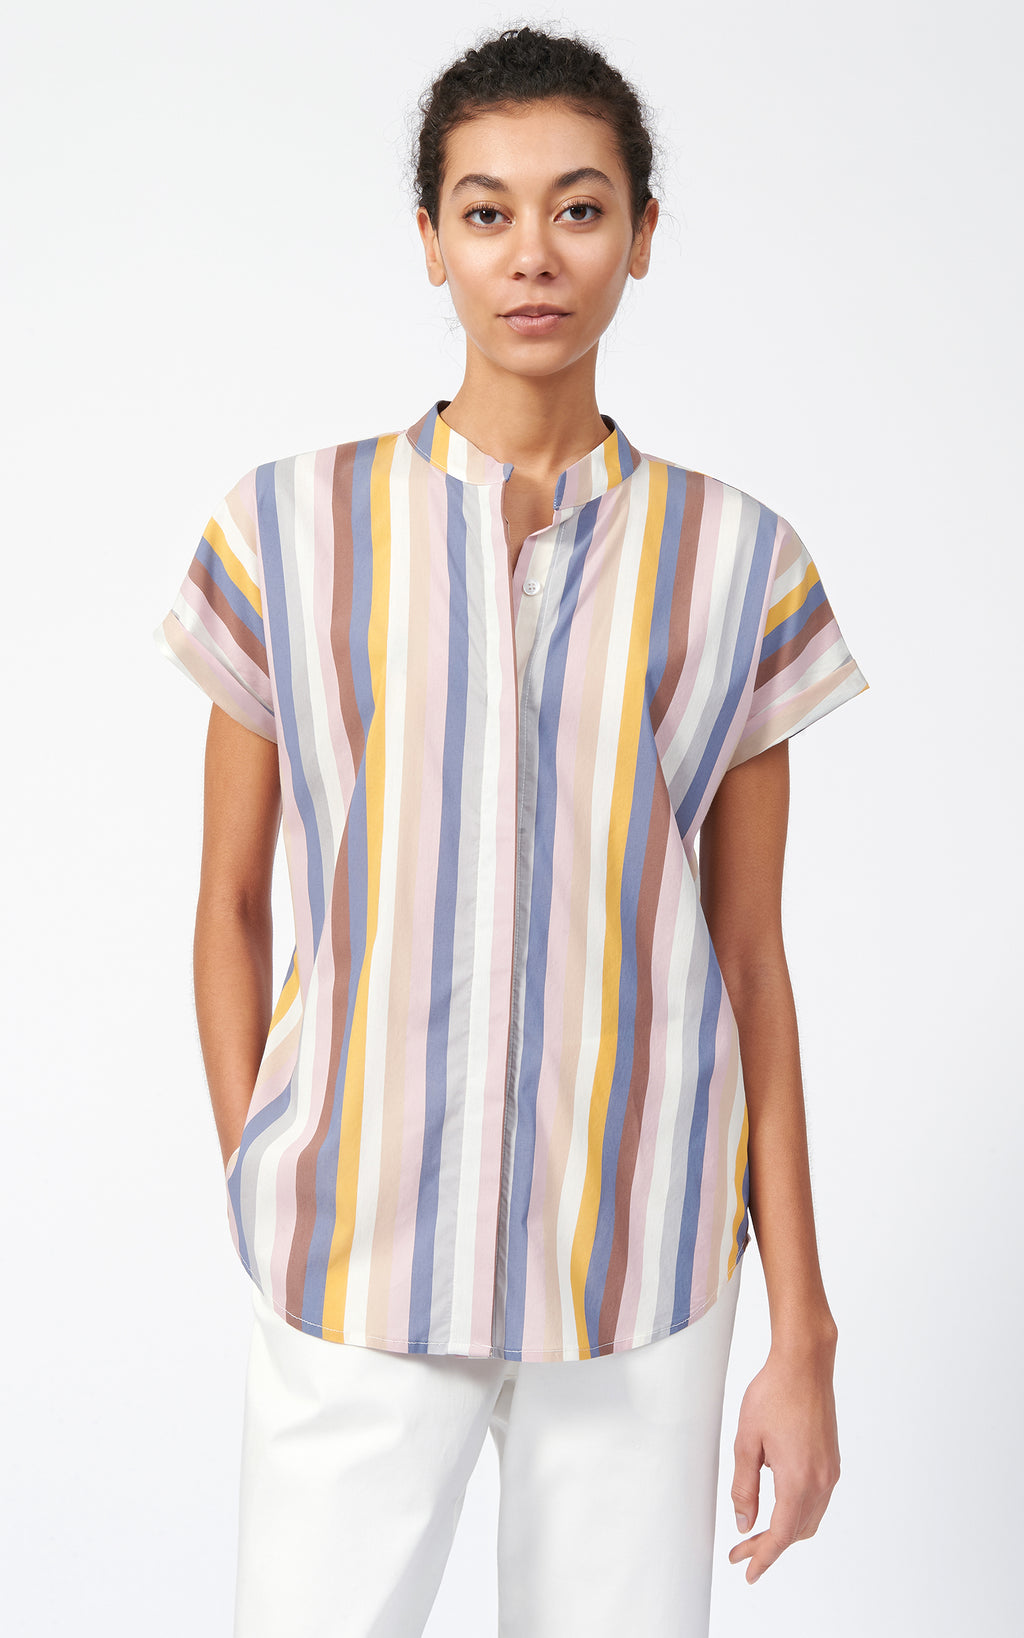 VENT BACK COLLAR SHIRT - MULTI